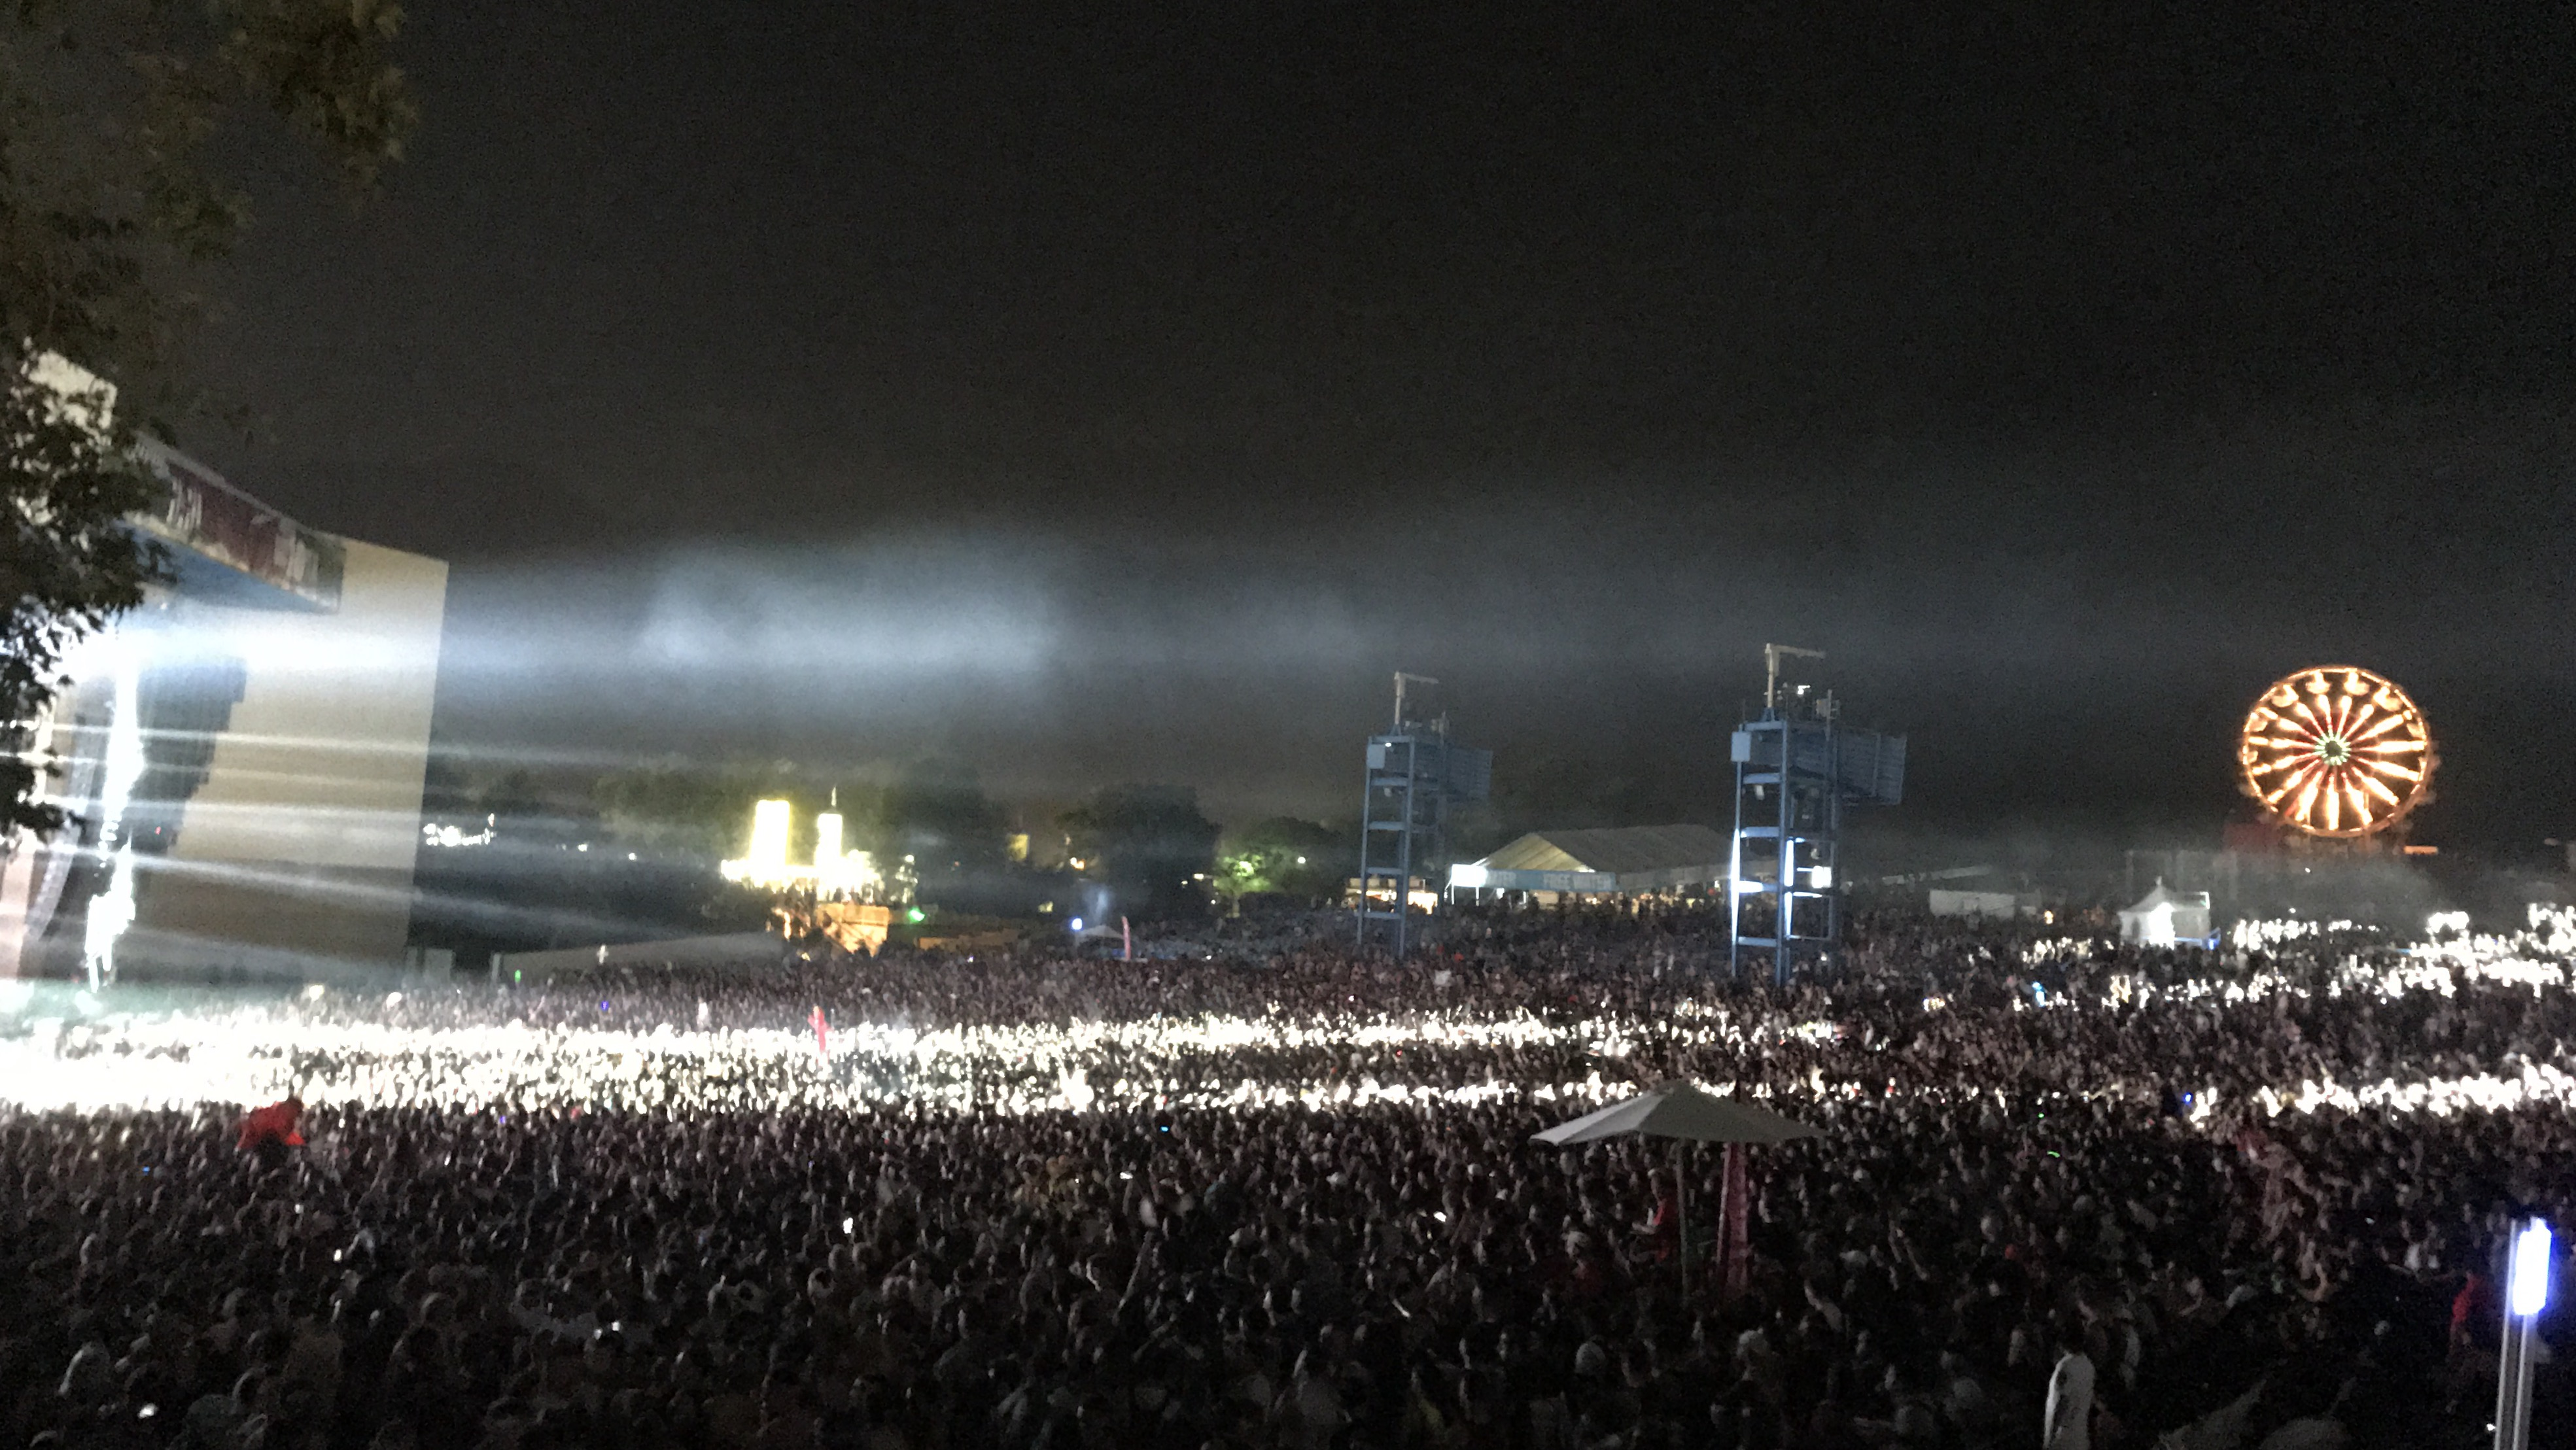 The crowd at Day 1 of HARD Summer (Photo by Roy Jurgens)